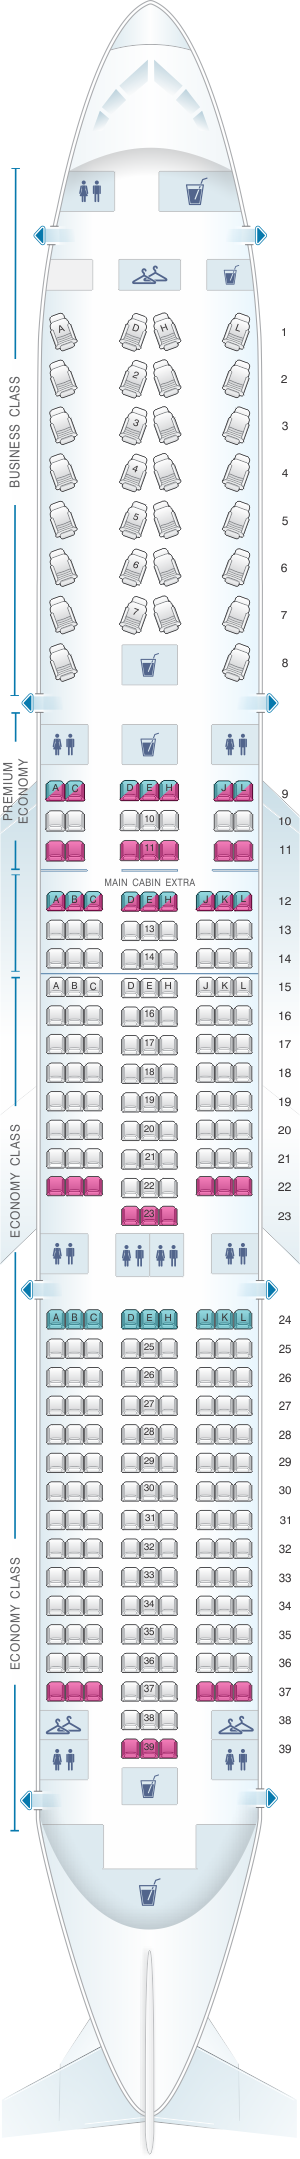 Seat map for American Airlines Boeing B787 9